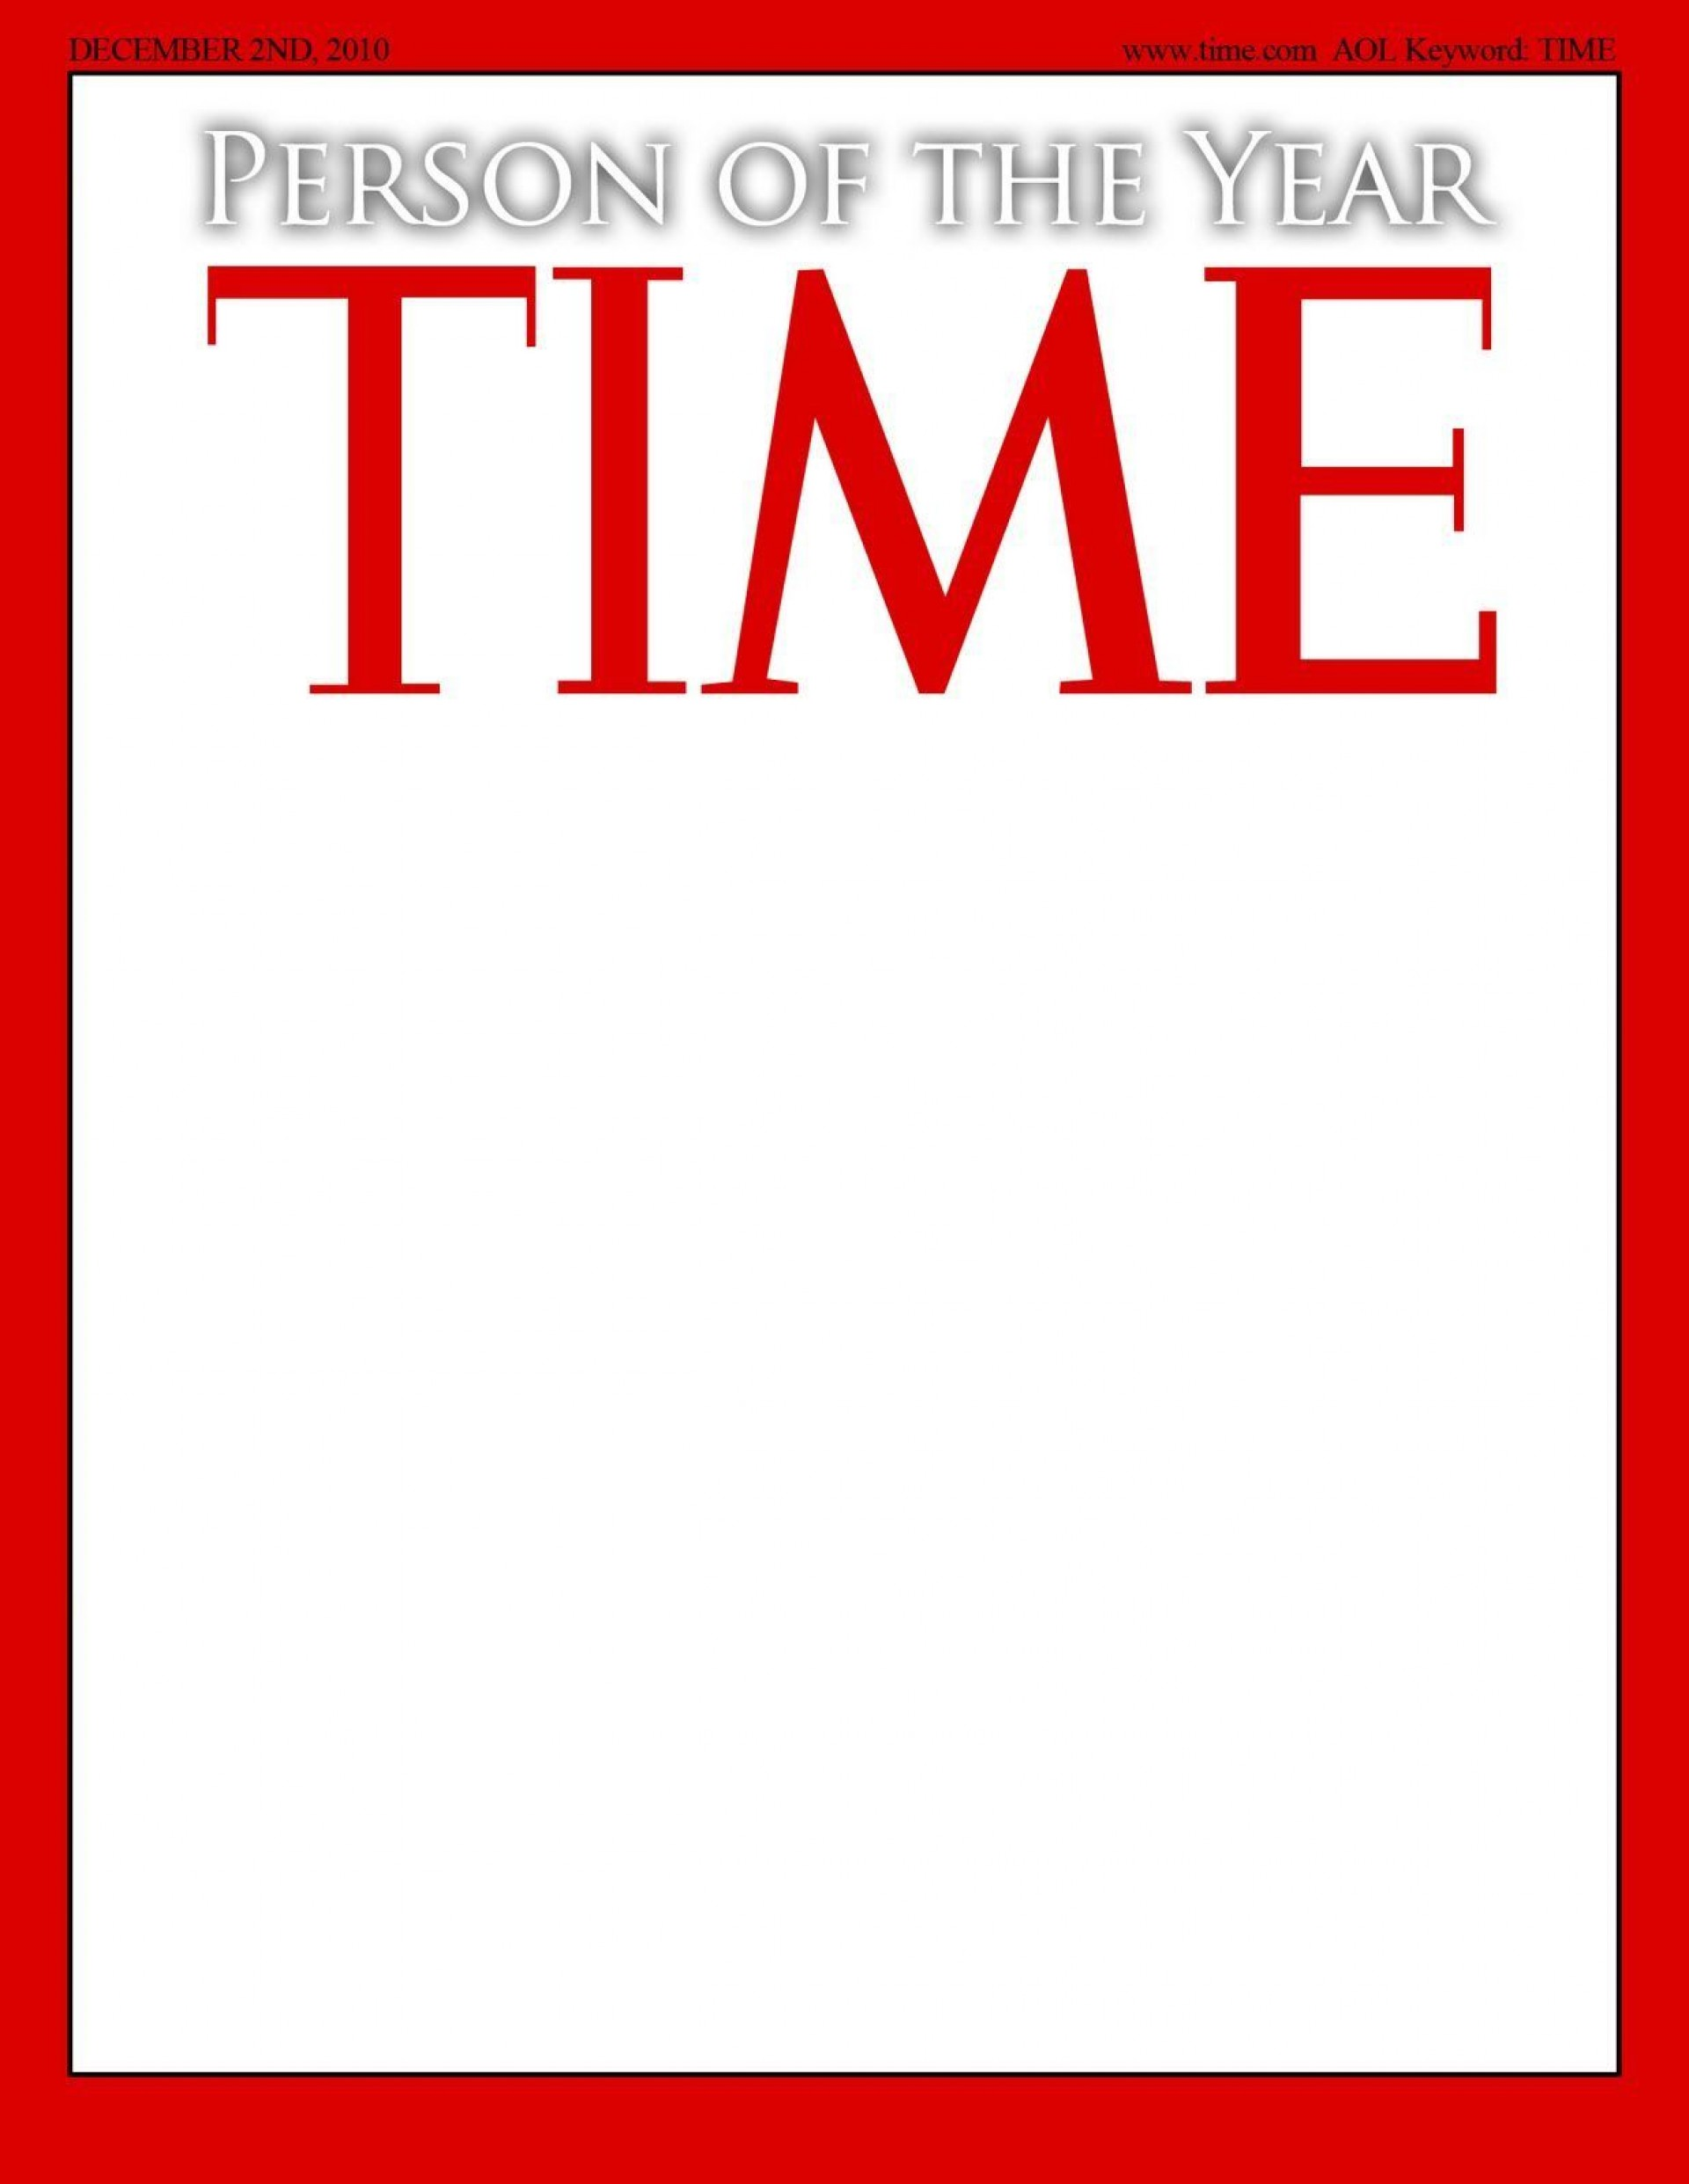 000 Unforgettable Photoshop Time Magazine Cover Template Idea  Fake1920